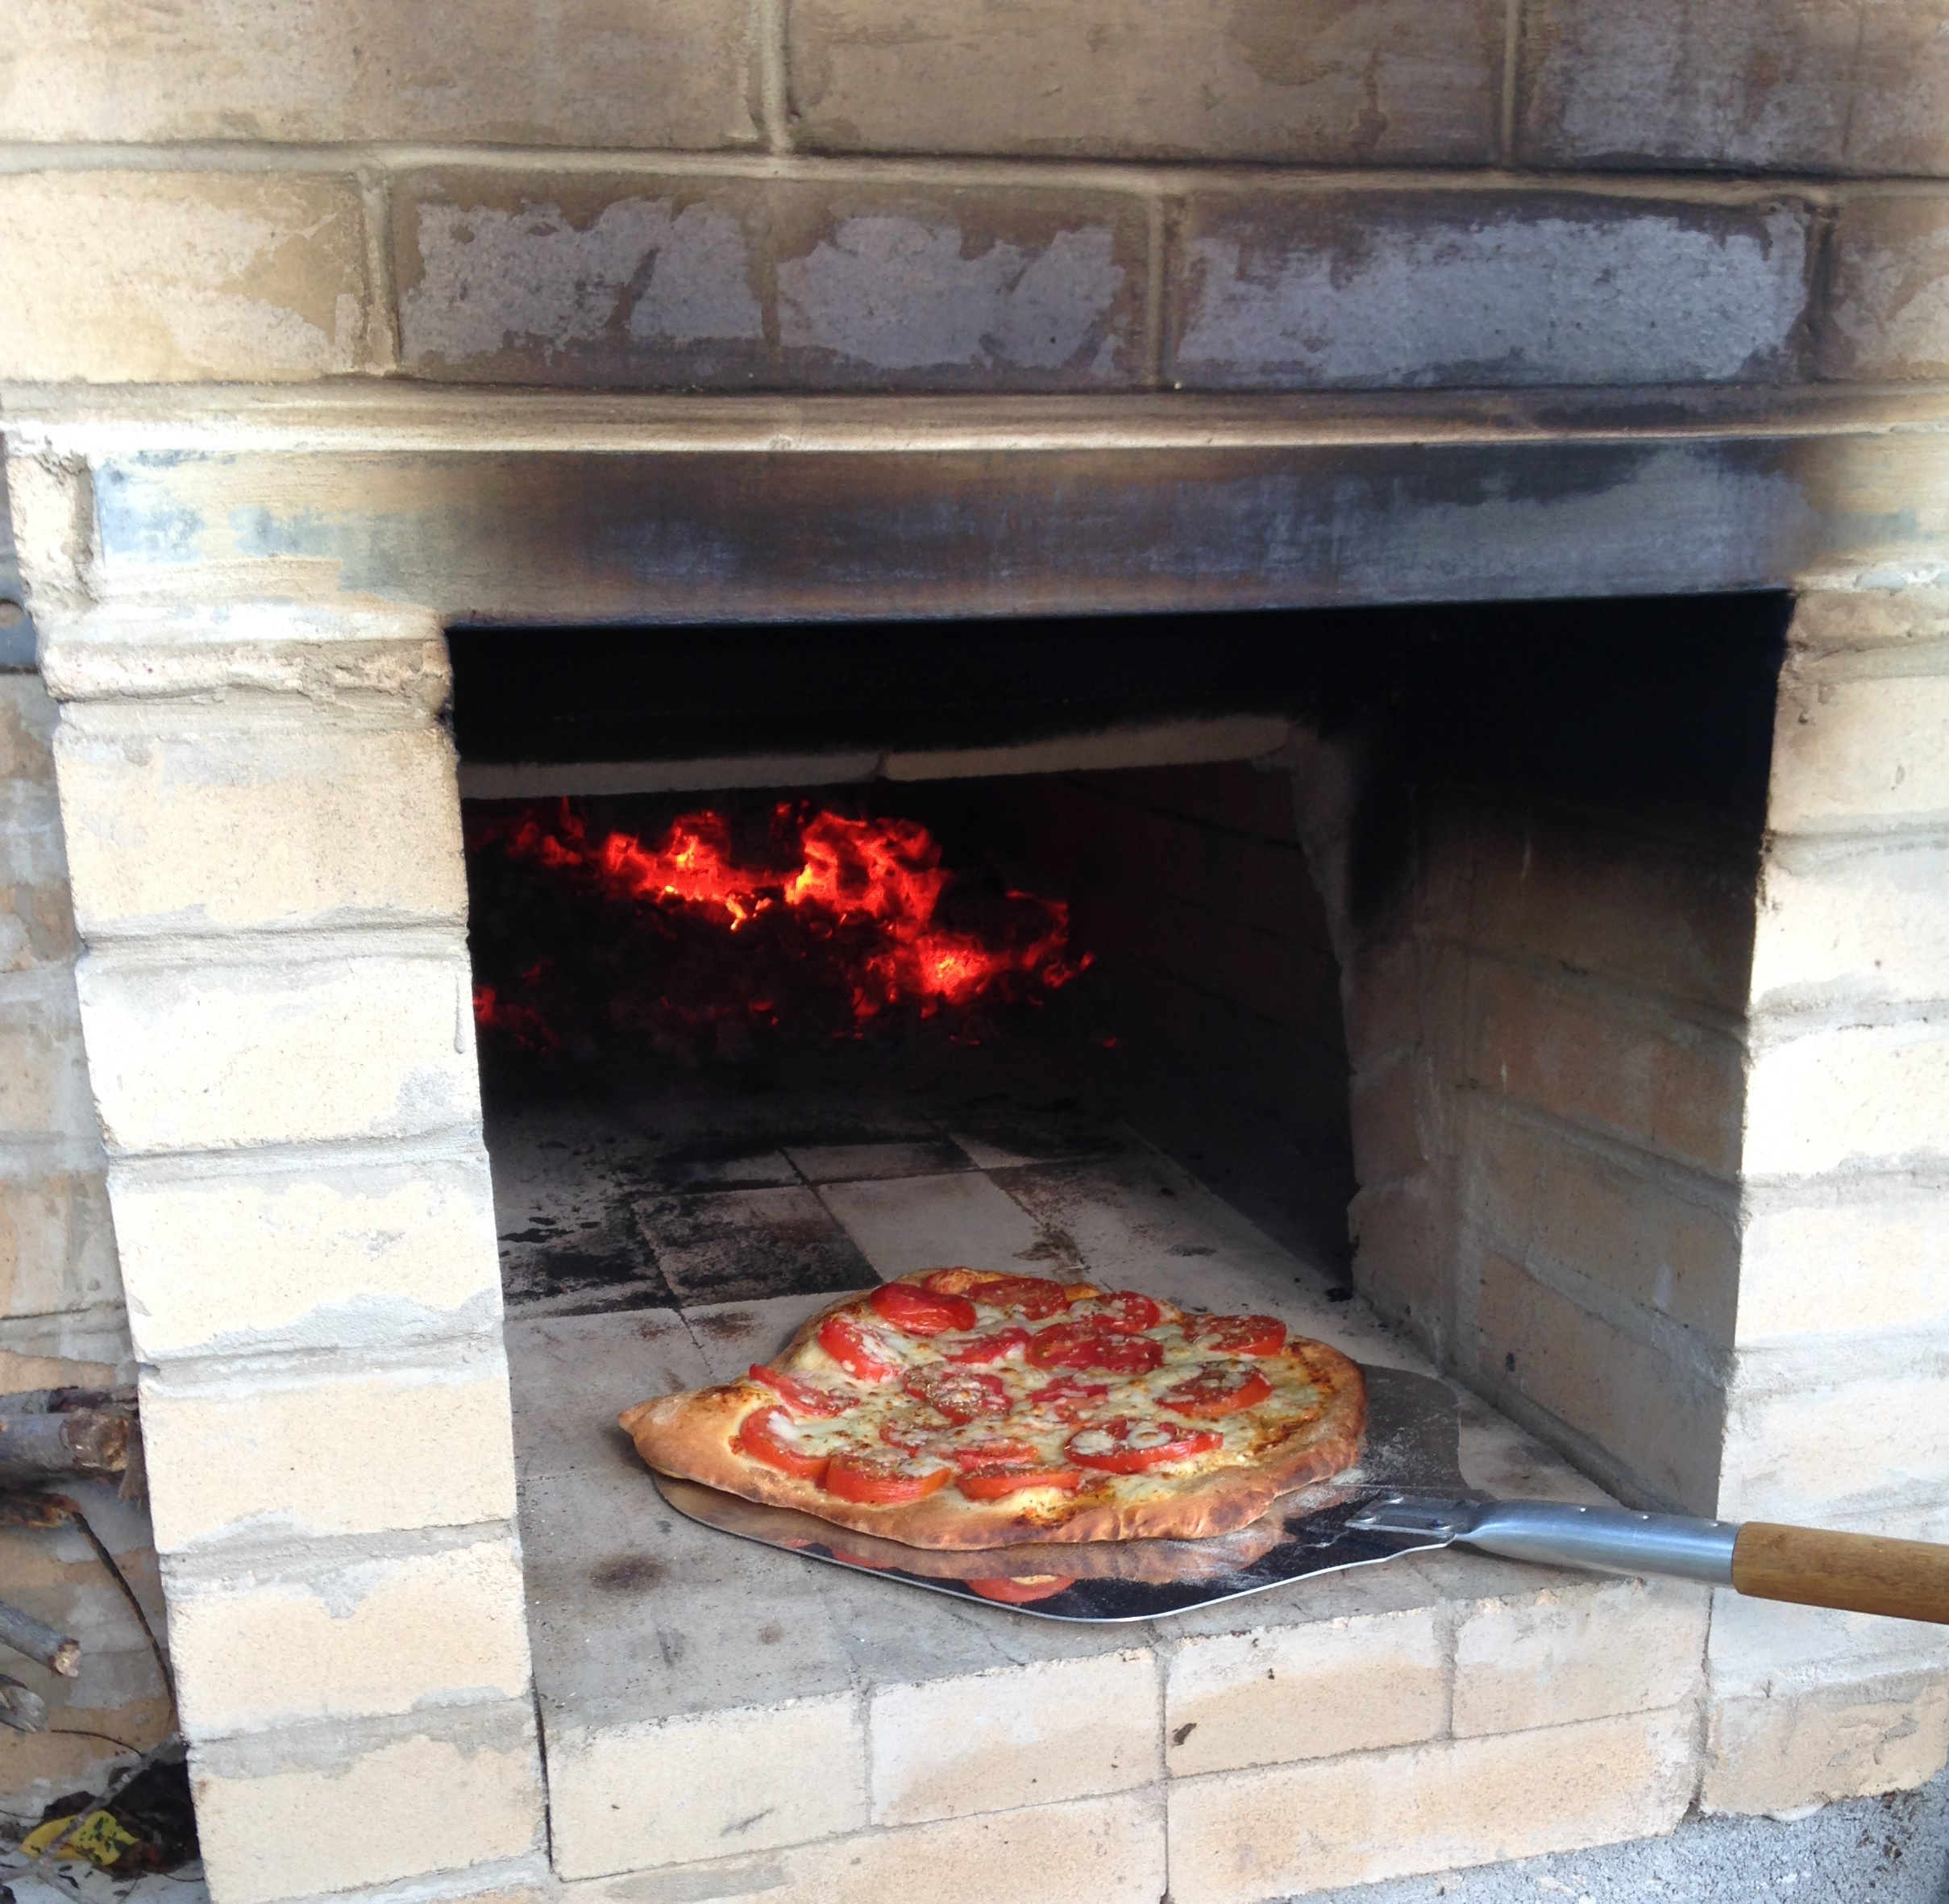 Cooking brick oven pizza.